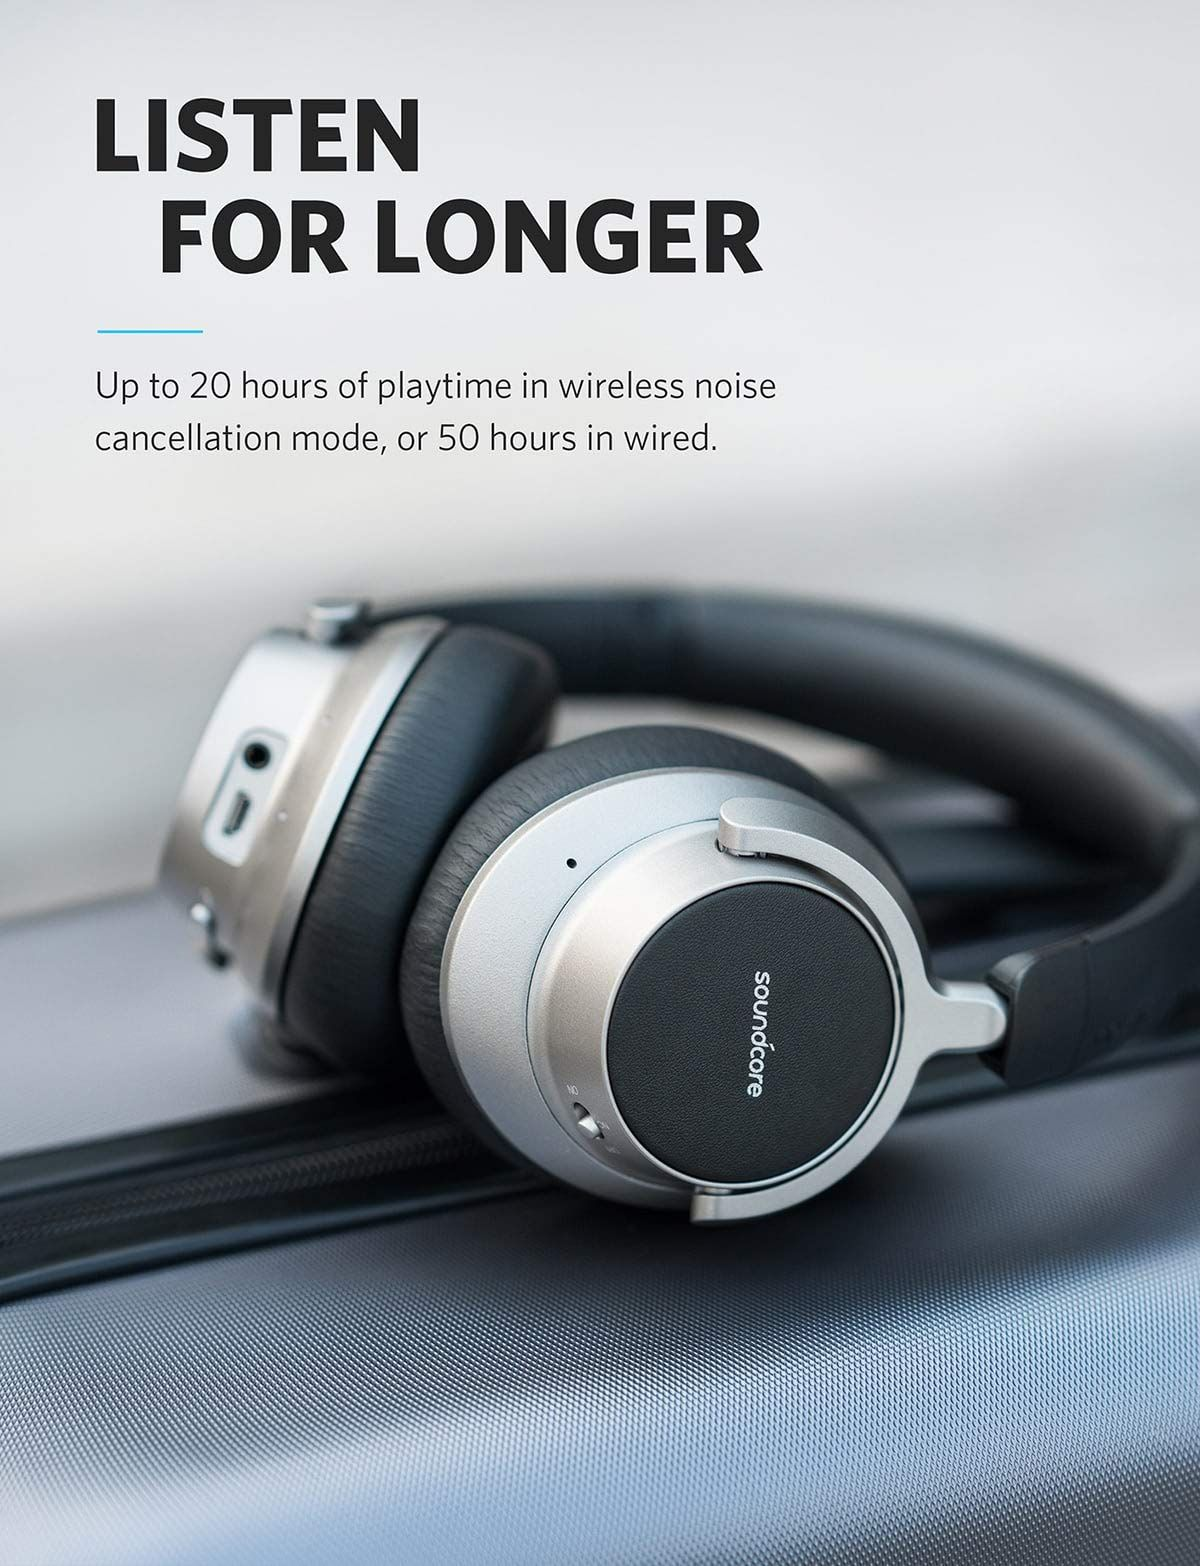 24661a29dd3 Anker Soundcore Space NC Wireless Noise Cancelling Headphones with Touch  Control, 20-Hour Playtime, Foldable Design for Travel, Work, and  Home,#Cancelling, ...